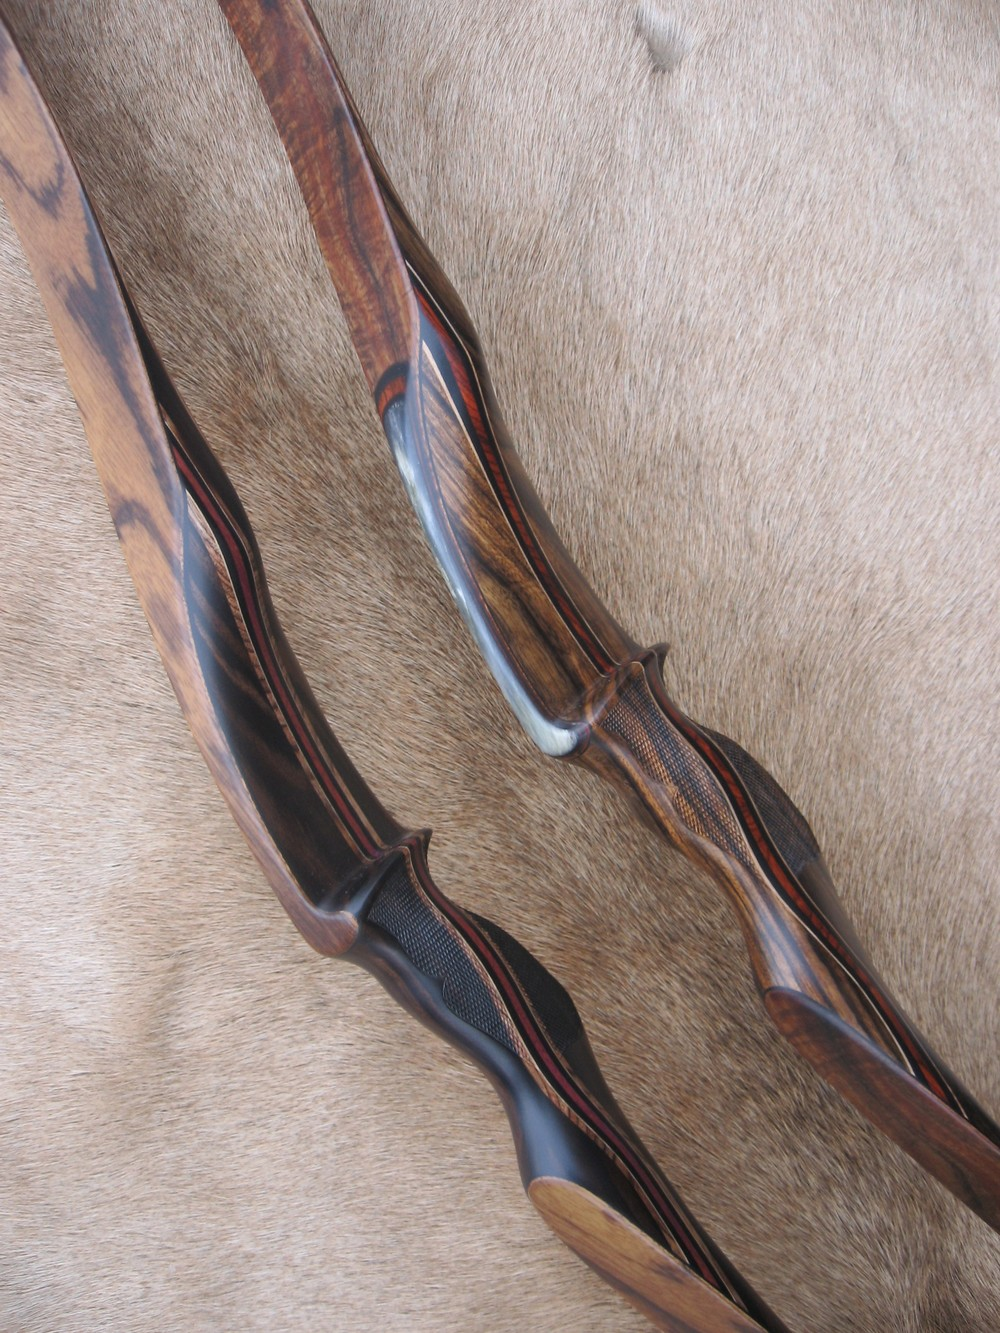 L to R - Macassar Ebony Riser w/ zebrawood limbs,  Shedua Riser with koa limbs.